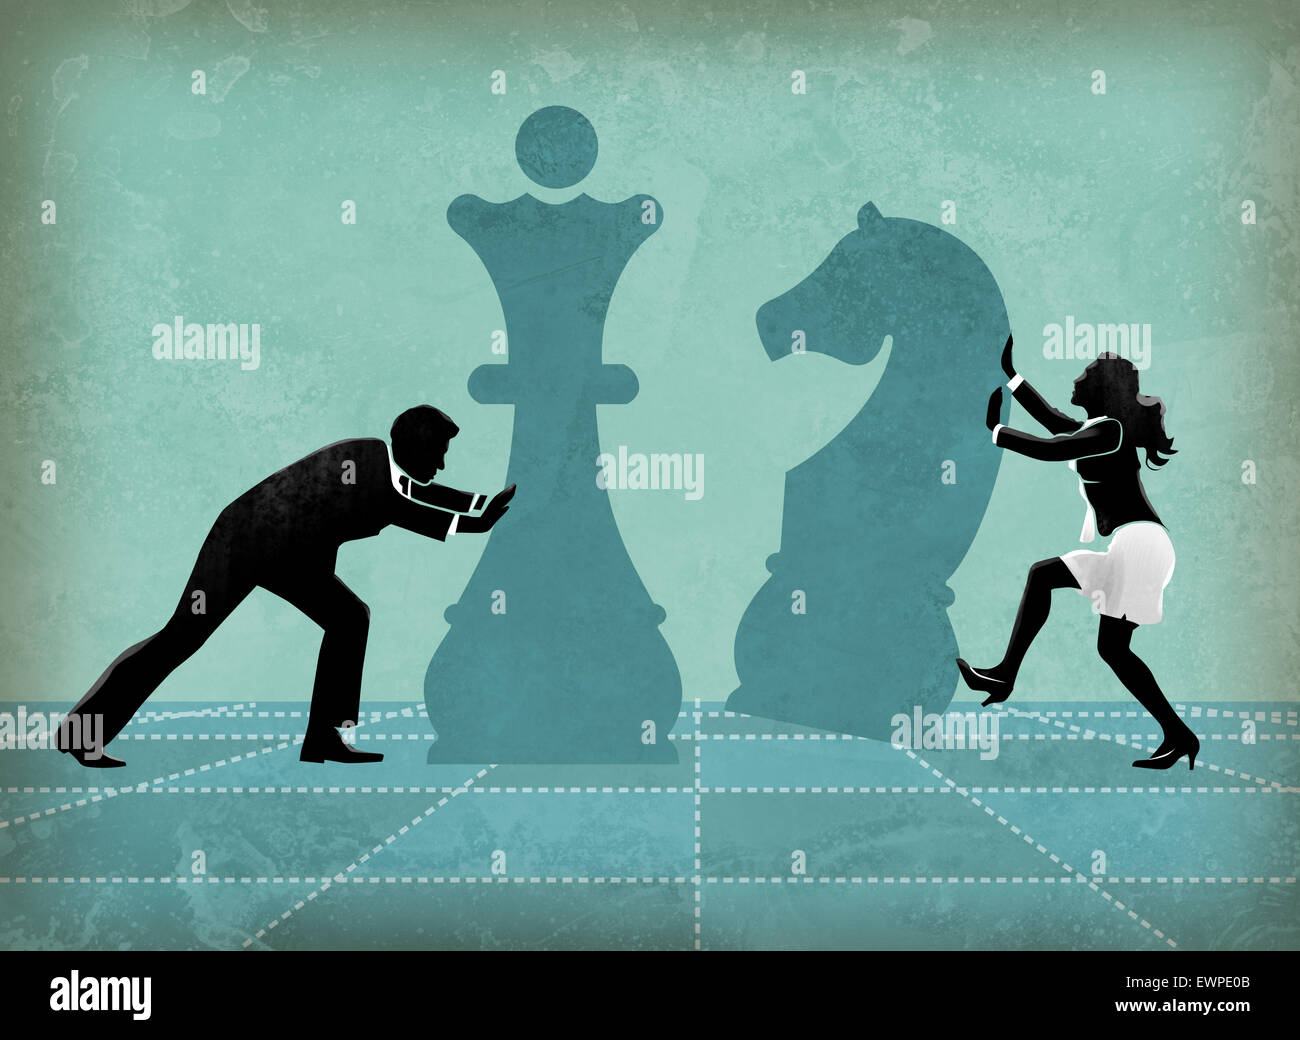 Business competitors playing chess striving for success - Stock Image